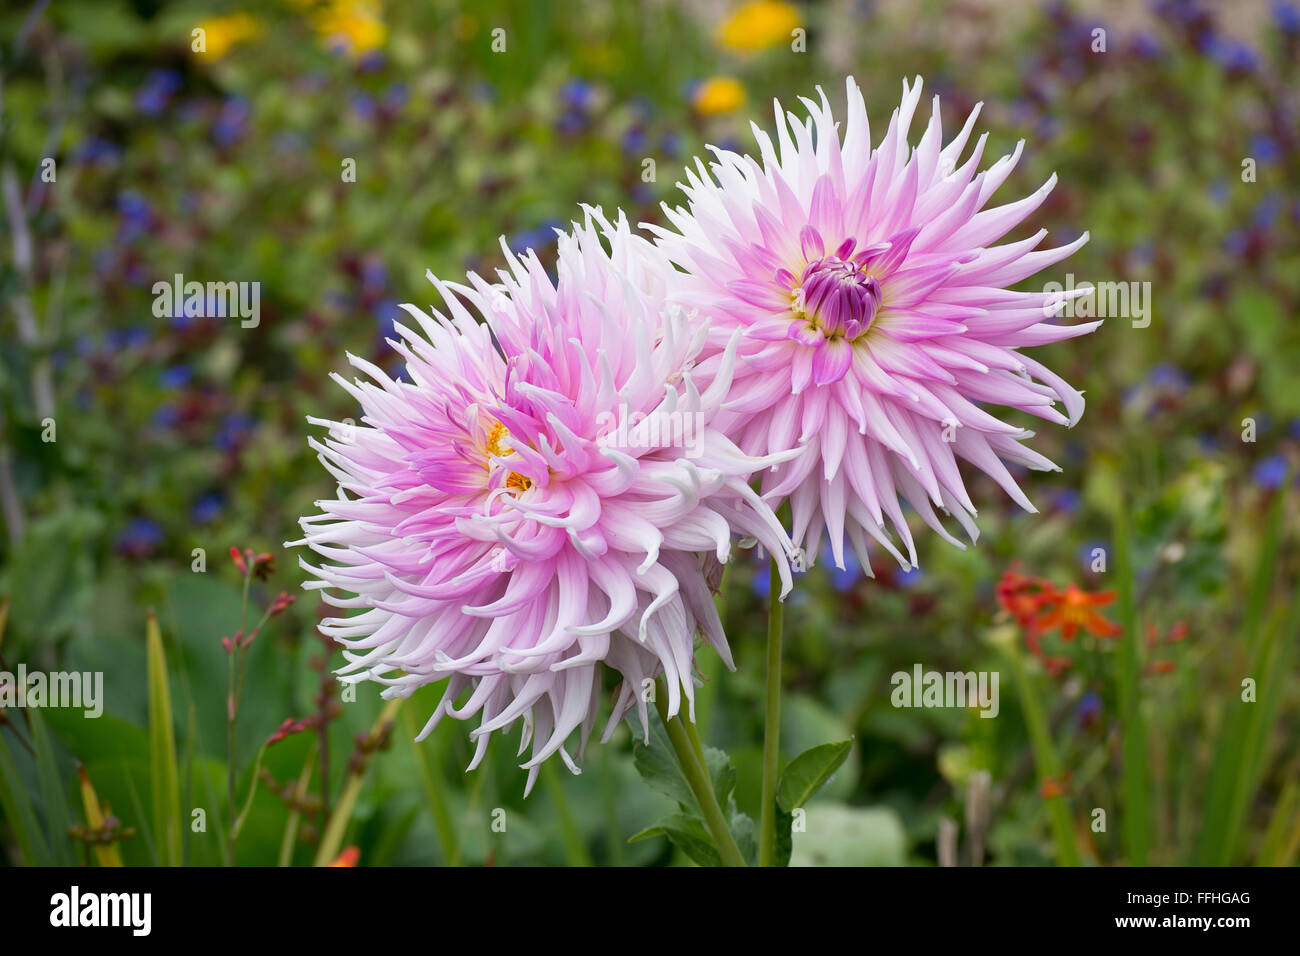 Pink Flowers With Spiky Petals In Garden Stock Photo 95657704 Alamy